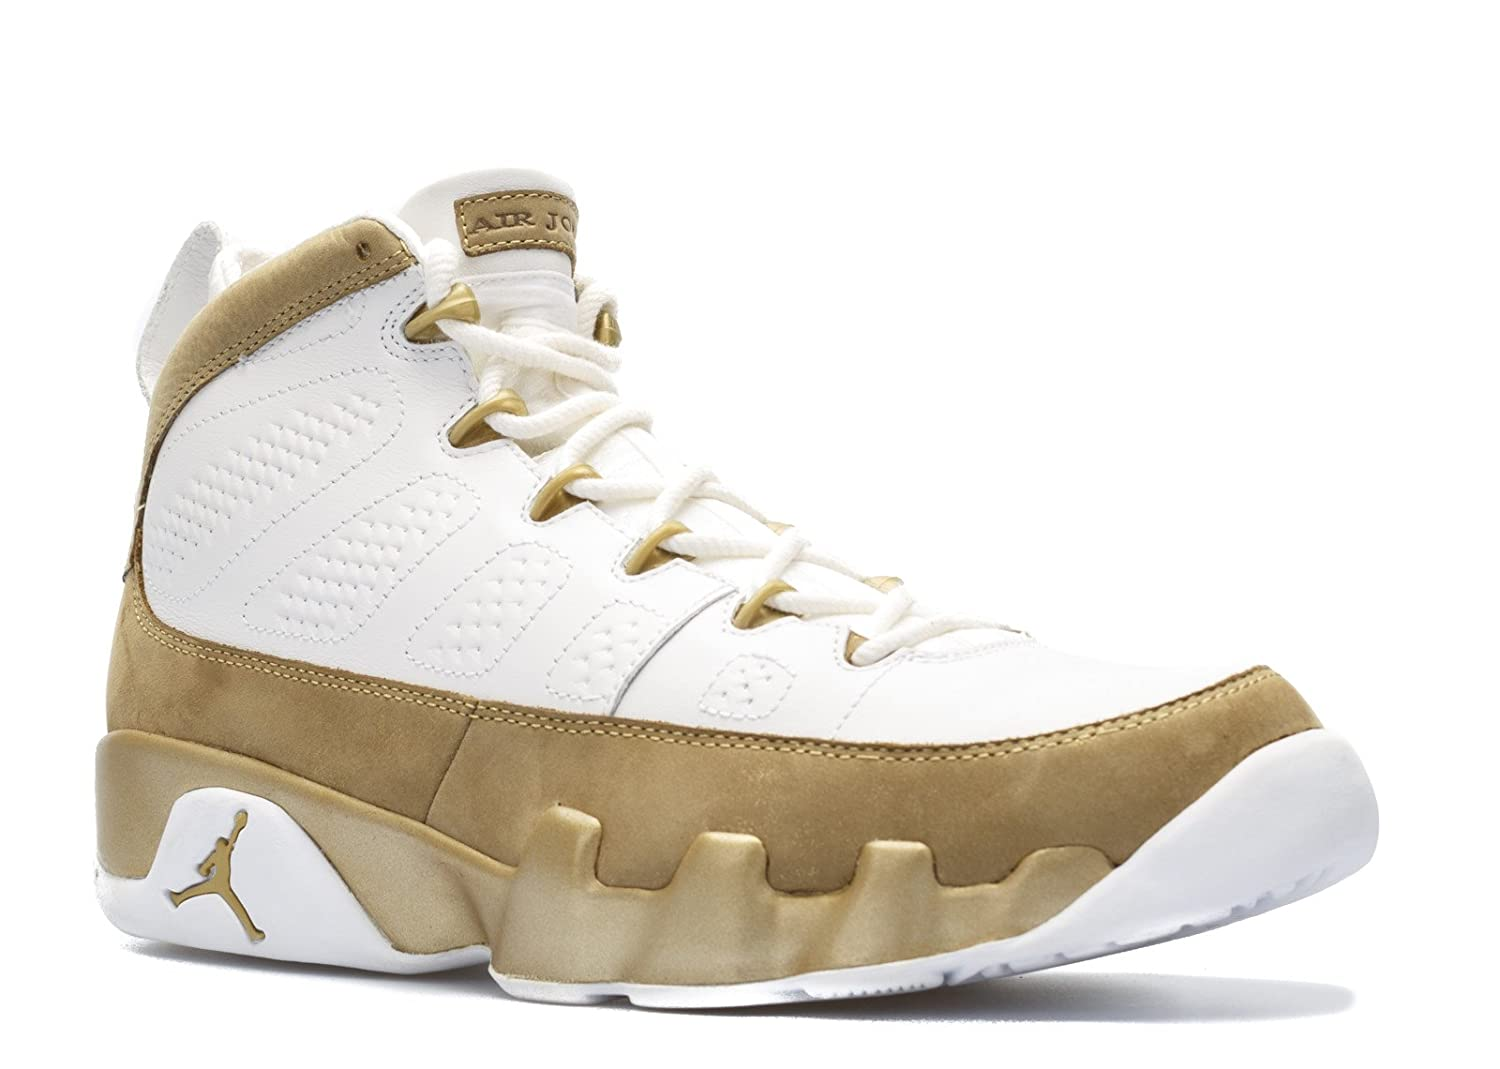 promo code 8645d b3d2b Amazon.com  Nike Mens Air Jordan 9 Retro Premio Bin 23